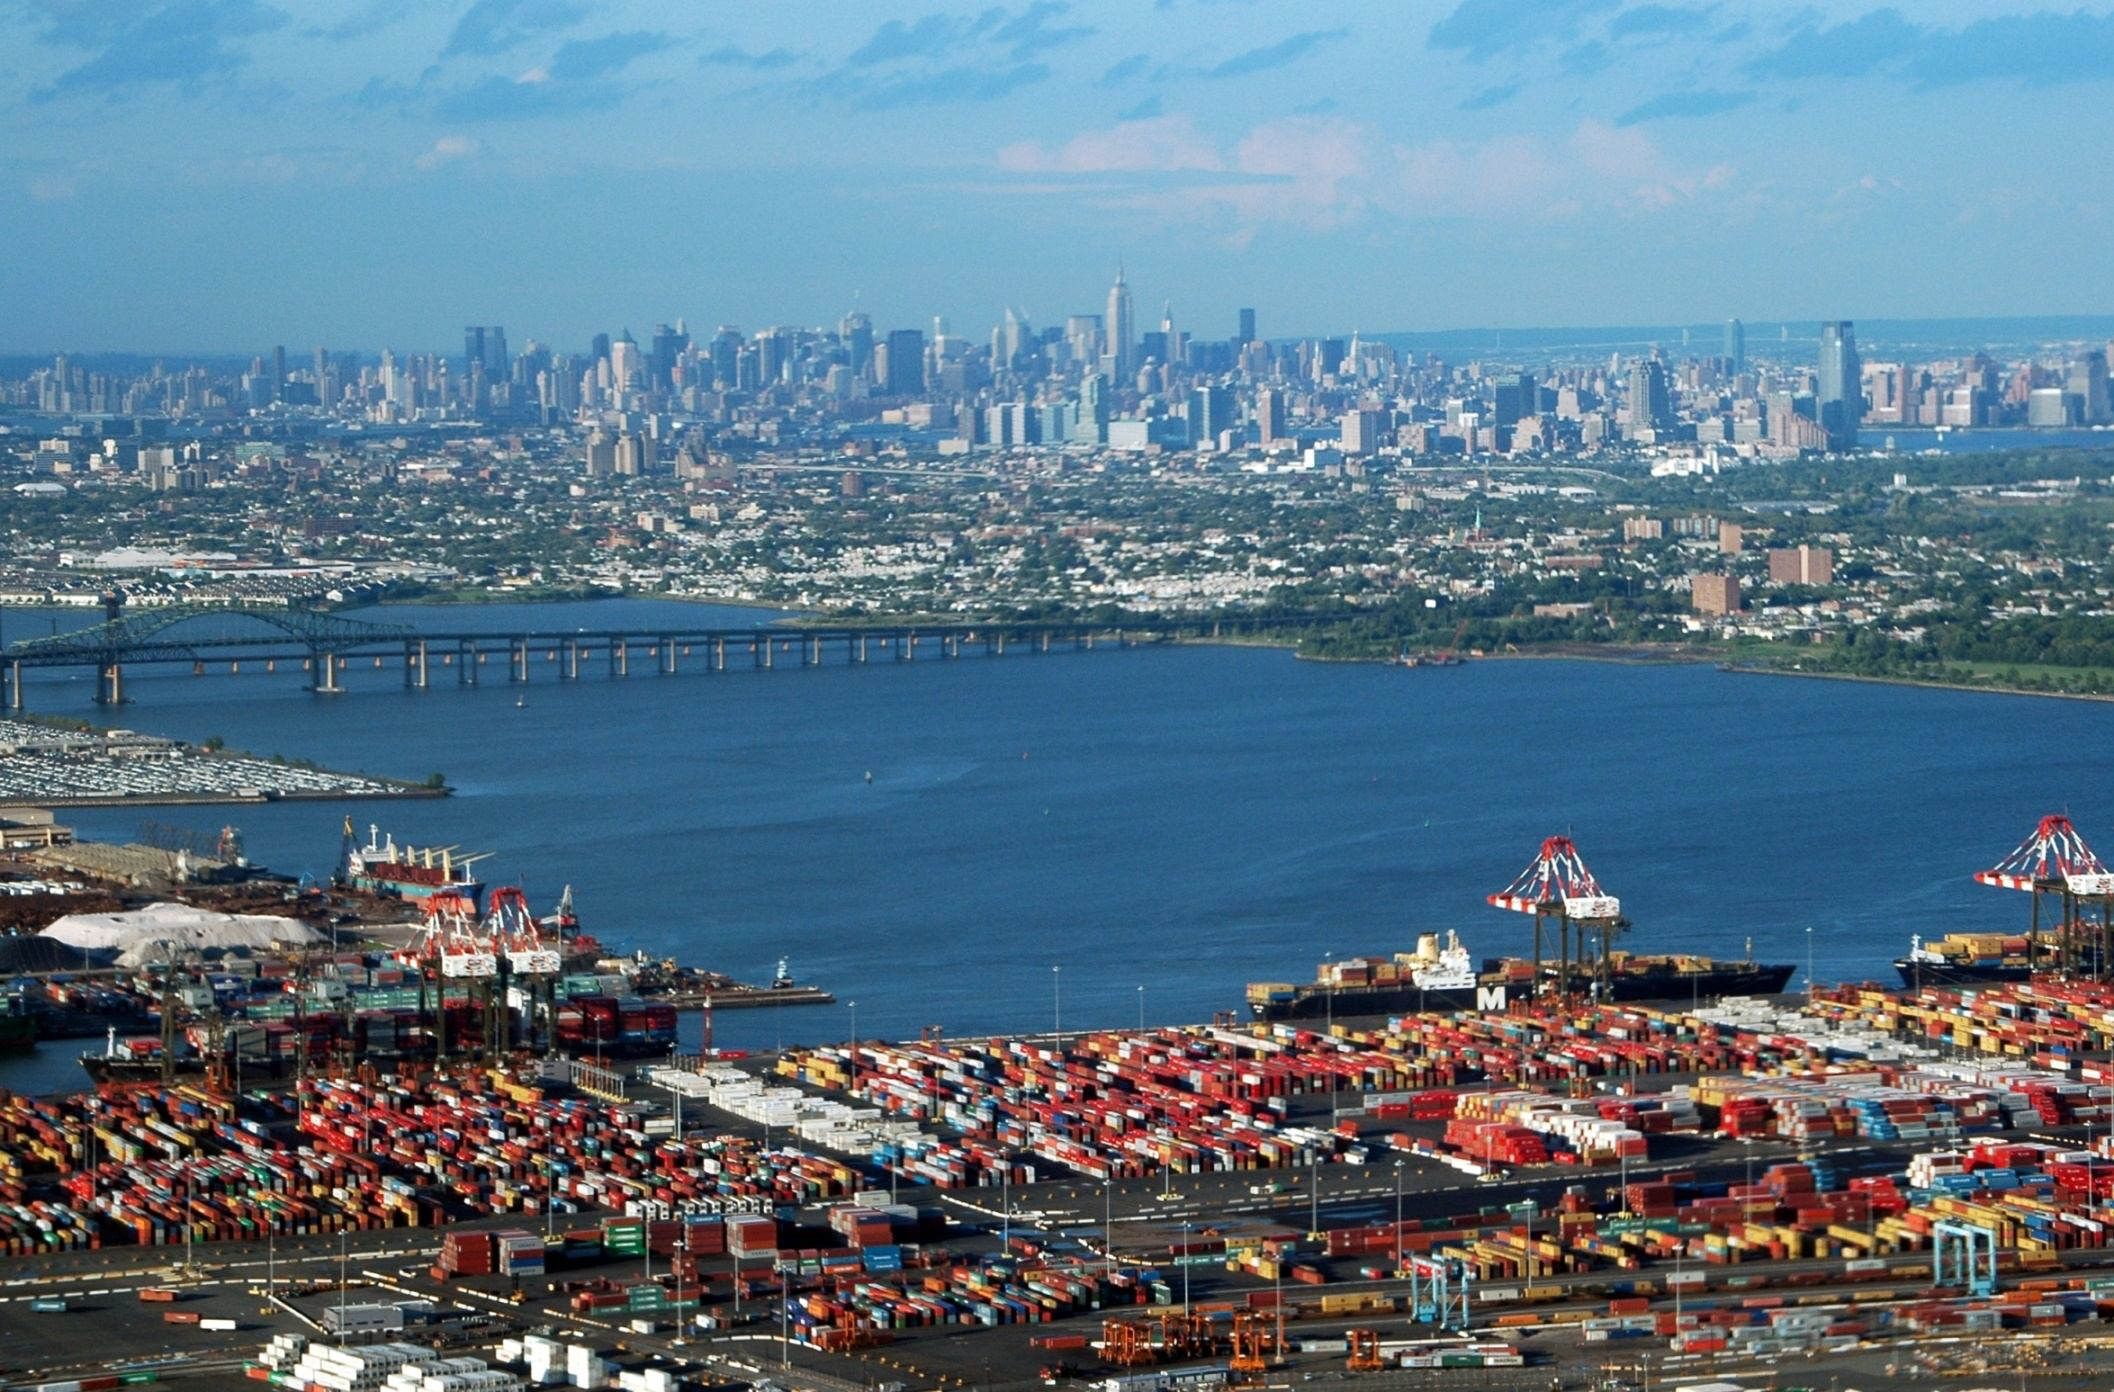 Brief longshoremen strike temporarily halted truck activity at major East Coast ports Friday